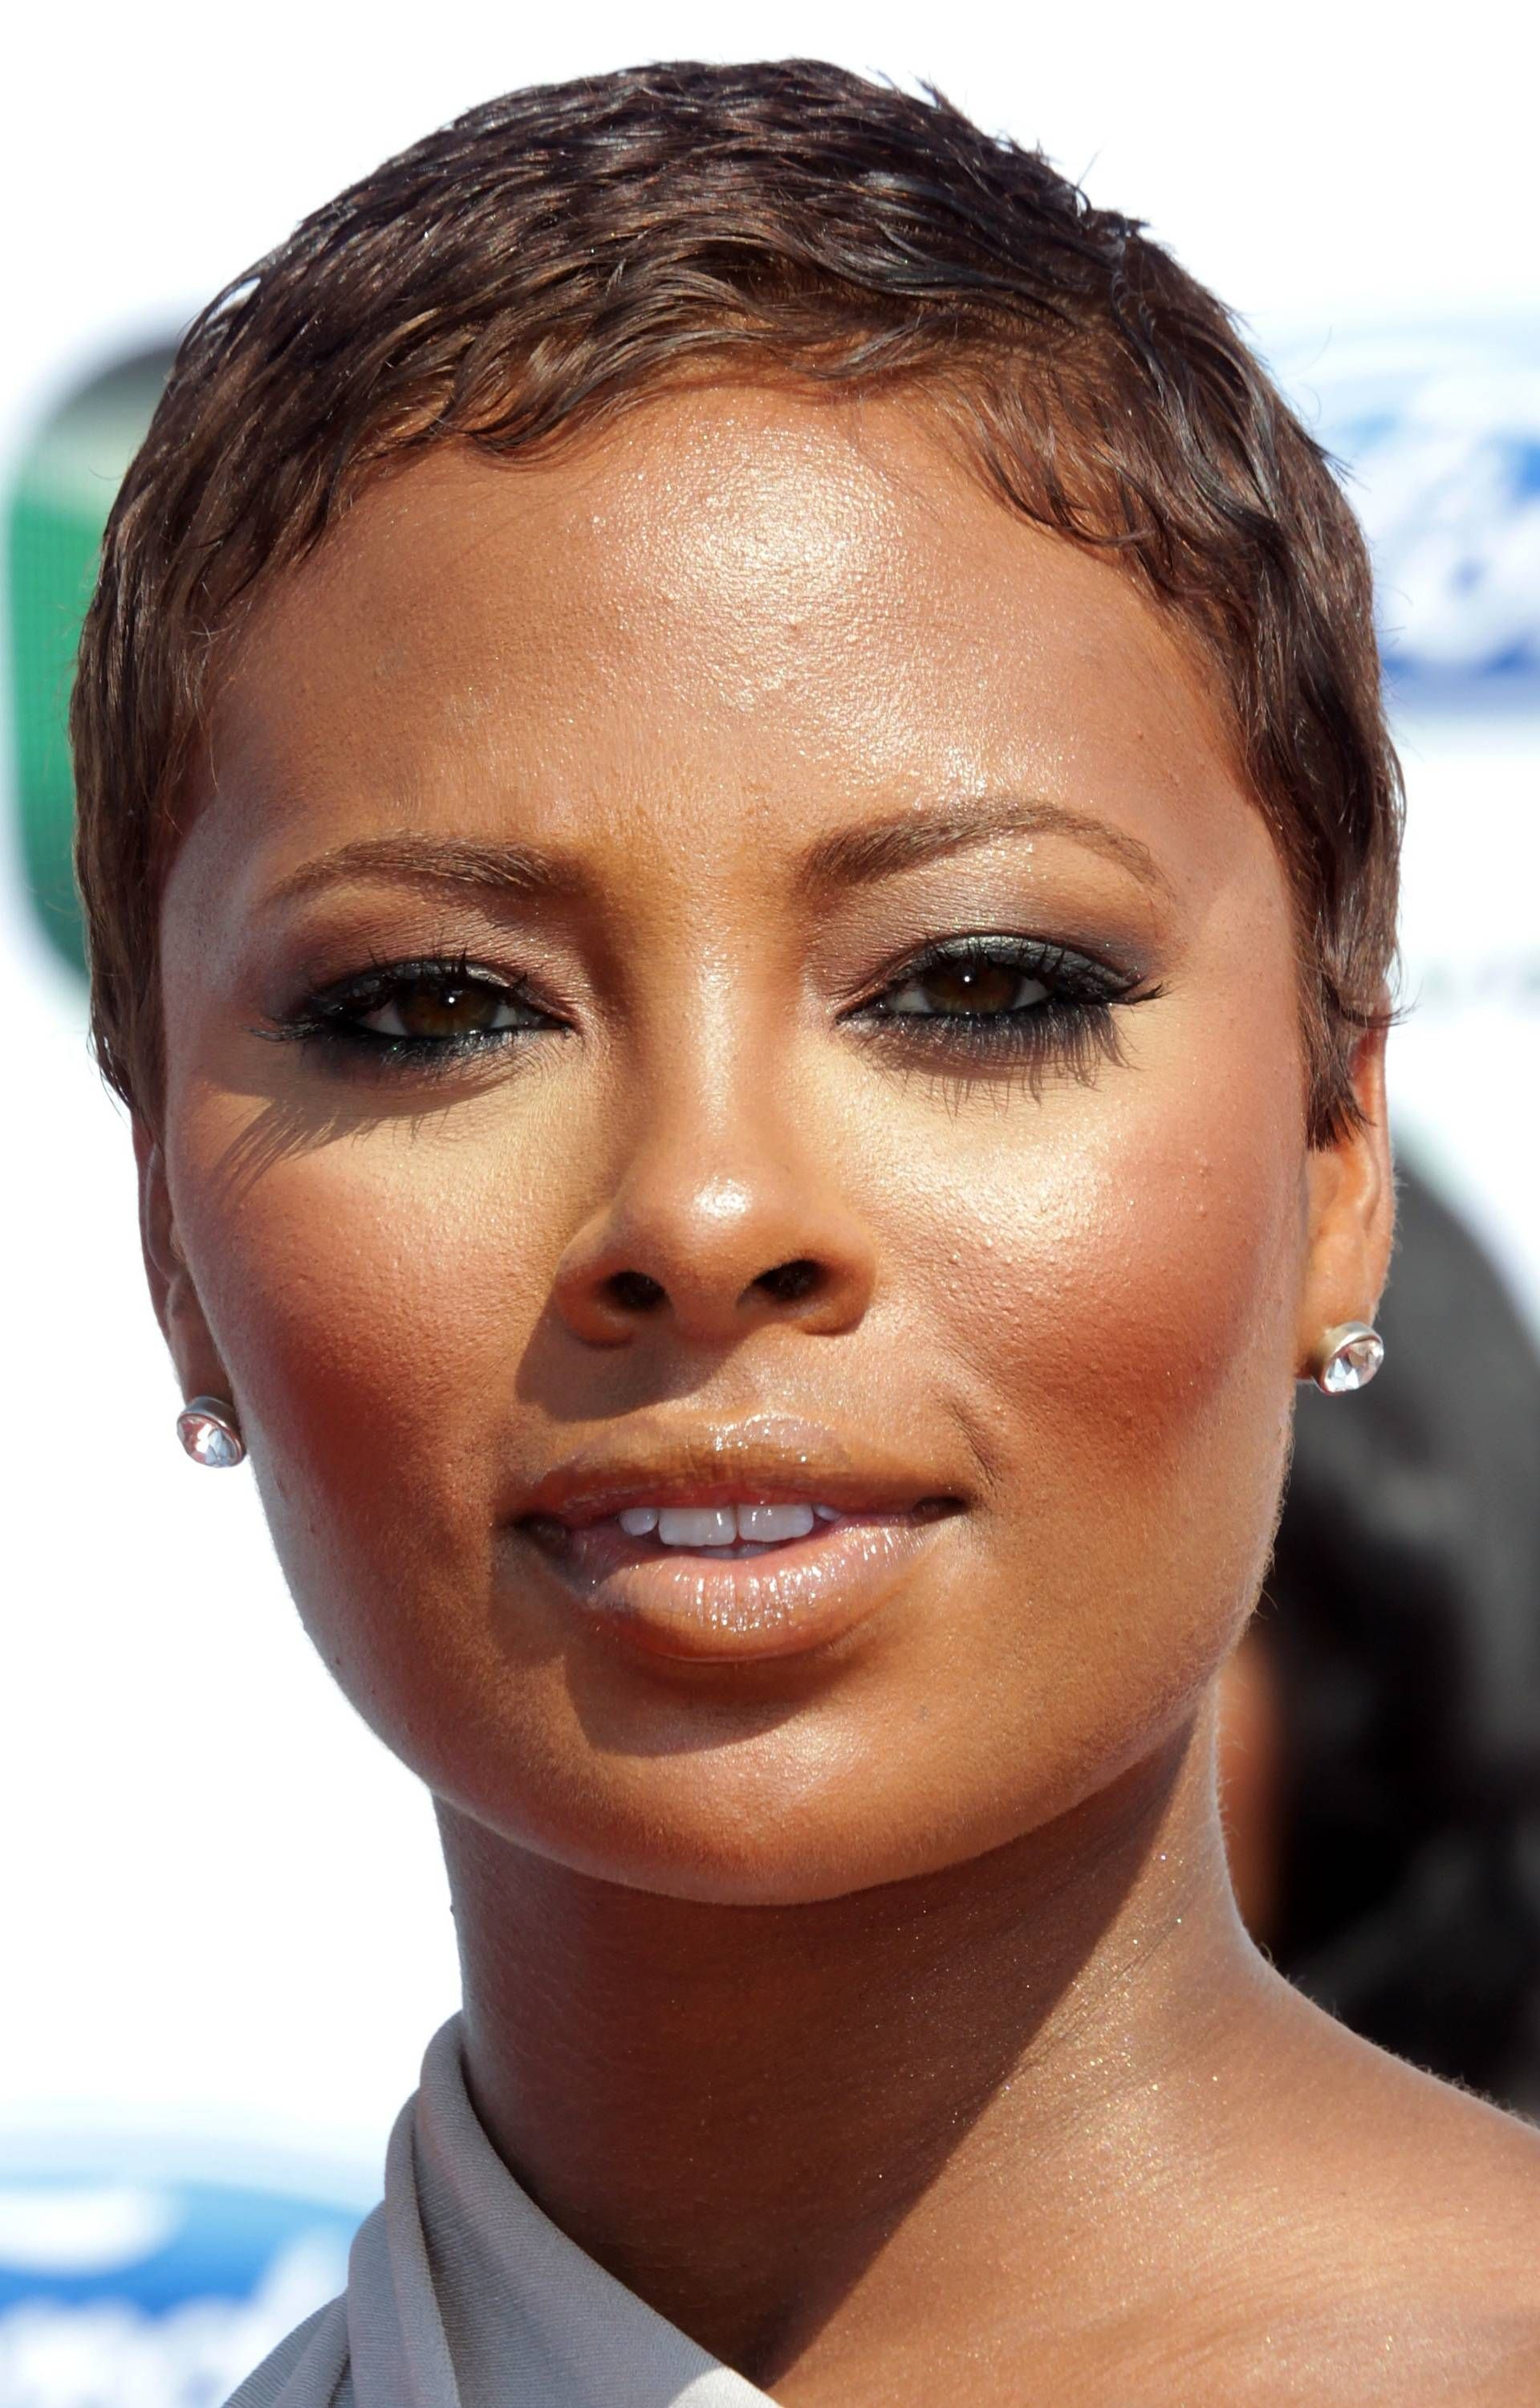 the 19 best celebrity pixie haircuts | pixie haircut, woman